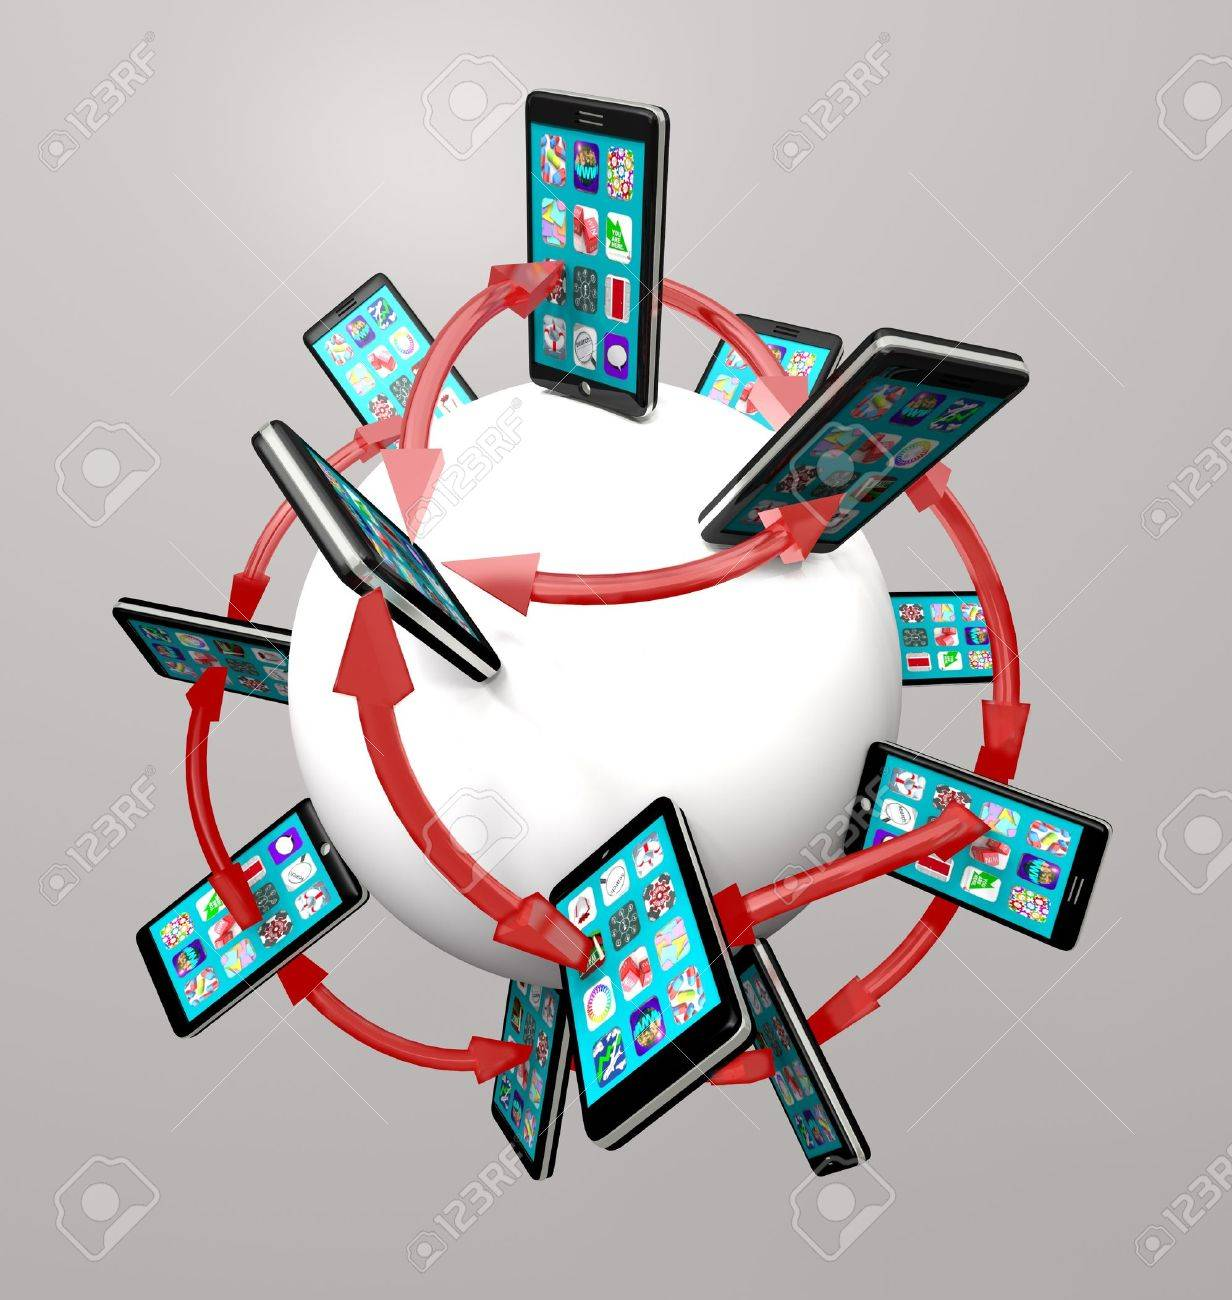 Many modern smart phones with apps on their touch screens around a global communication network, connected by arrows symbolizing networking Stock Photo - 9036836